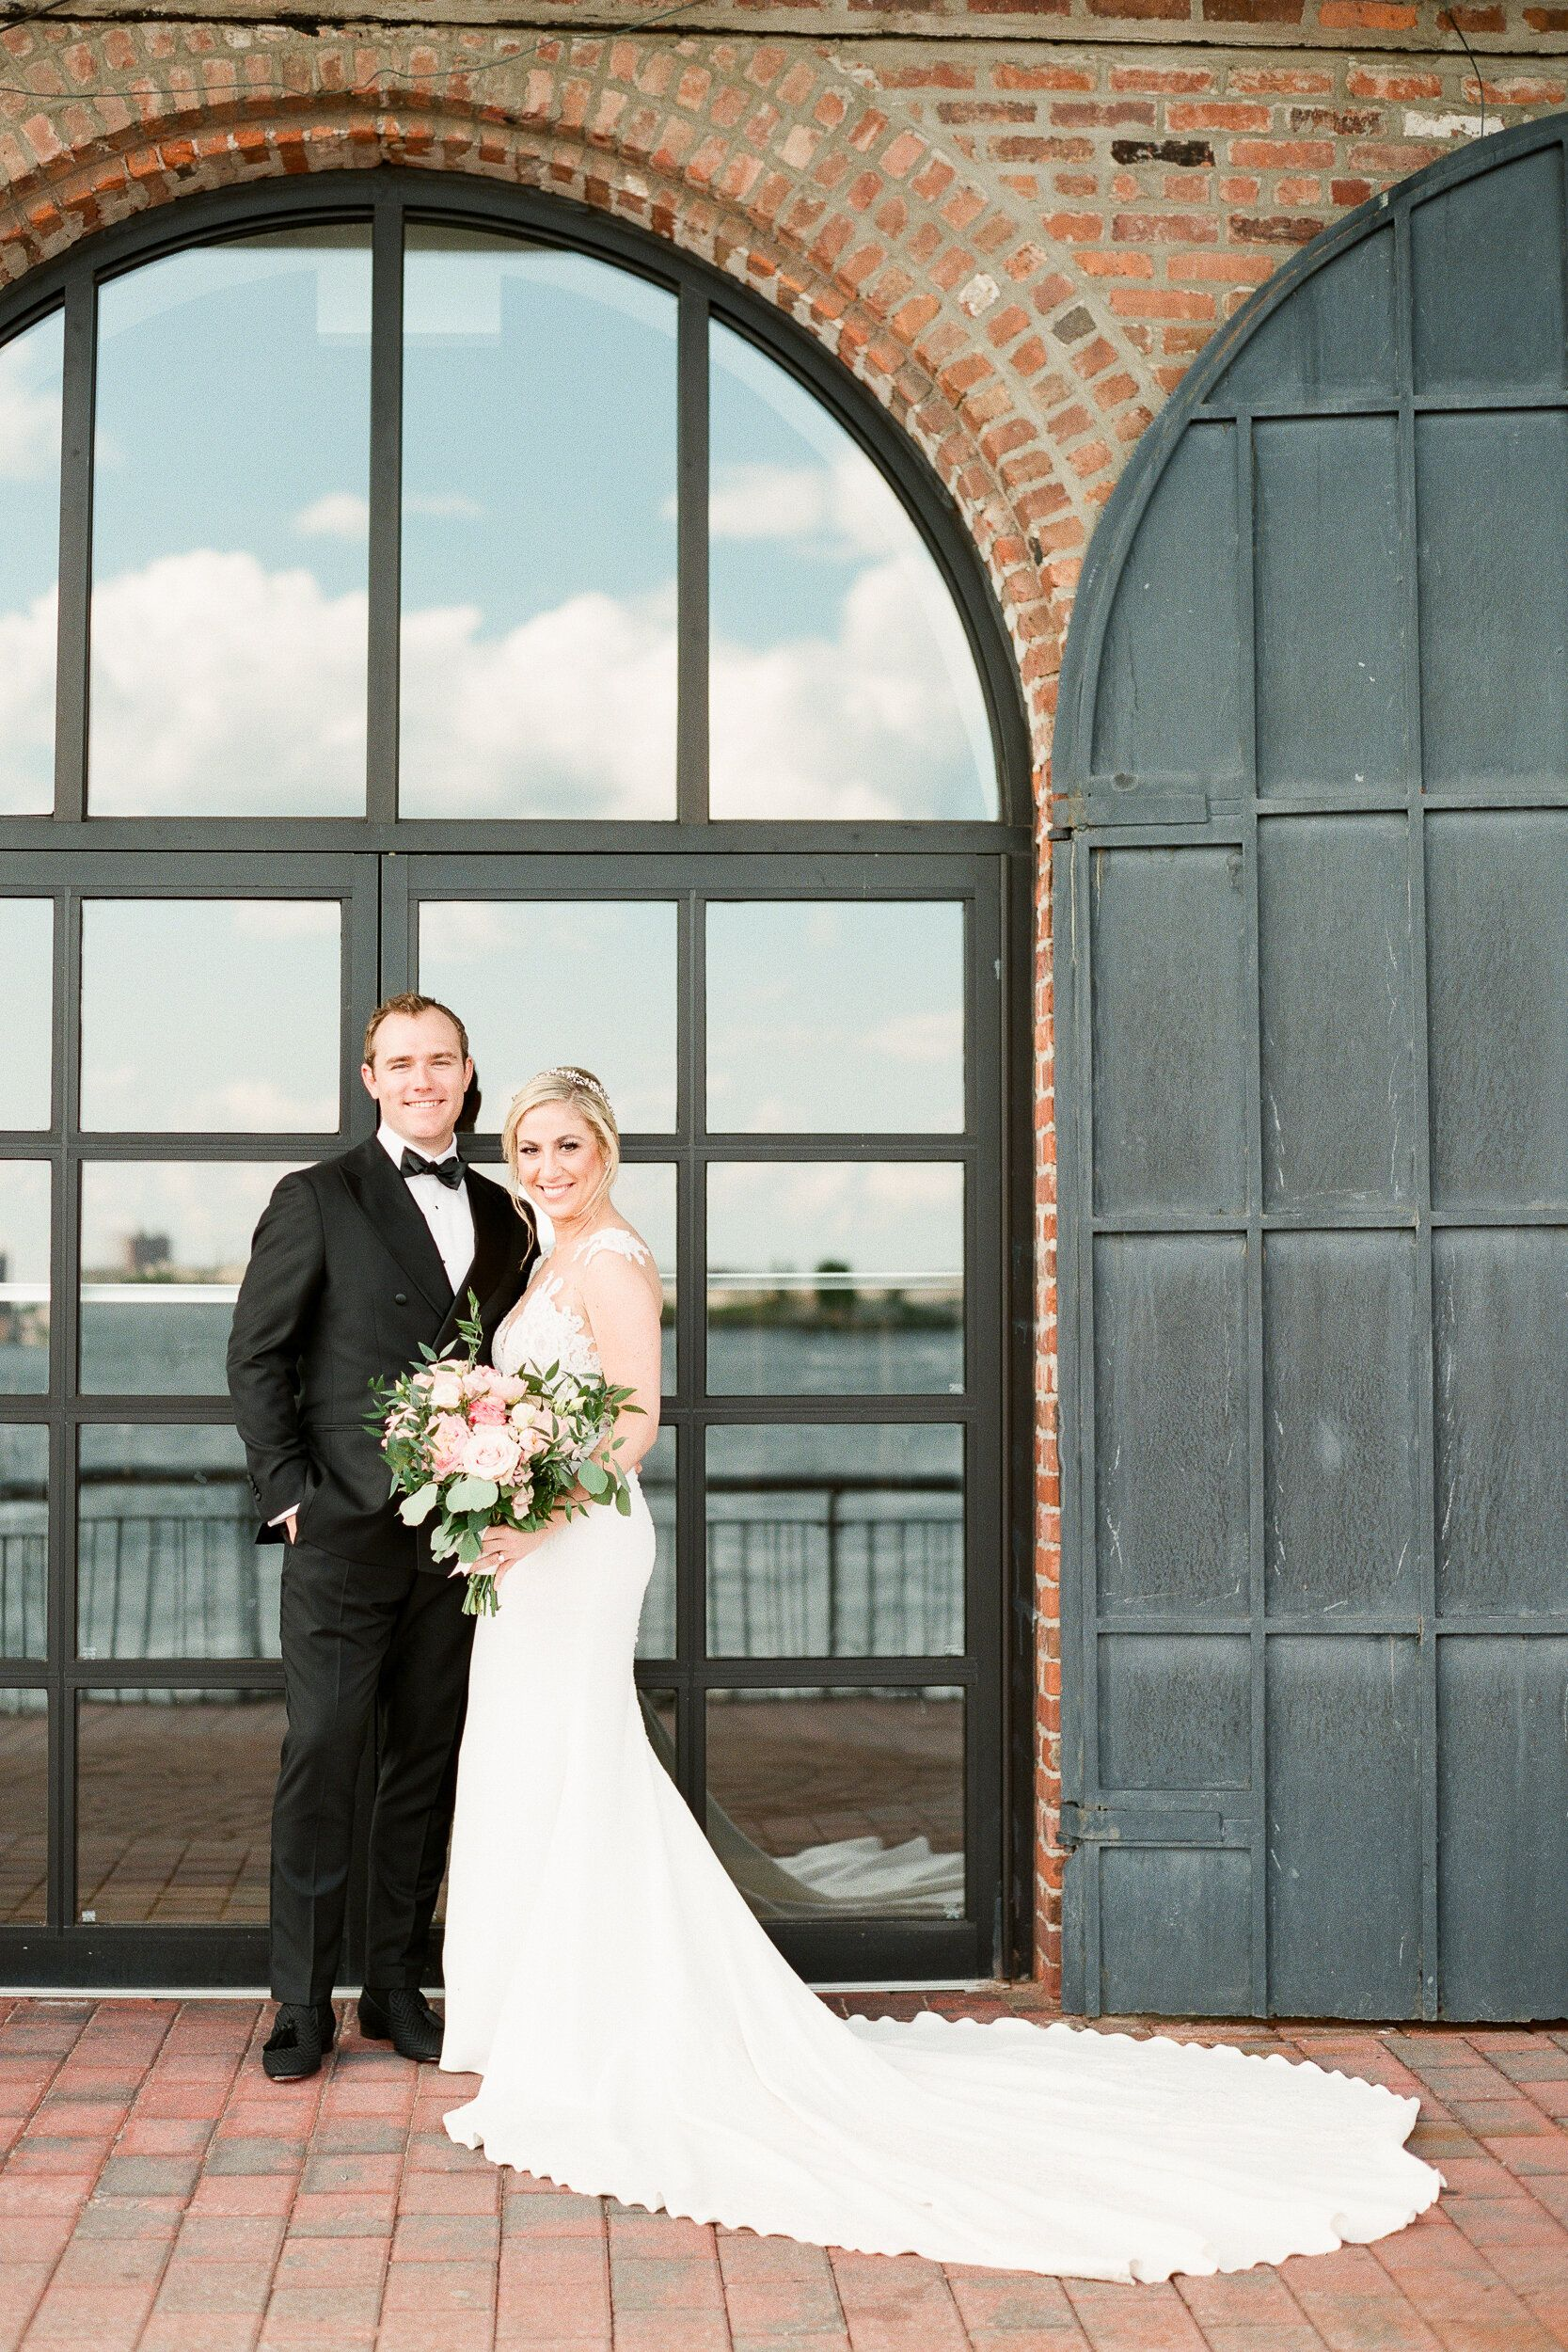 Bride And Groom Wedding Photos In Front Of Glass Doors With Black